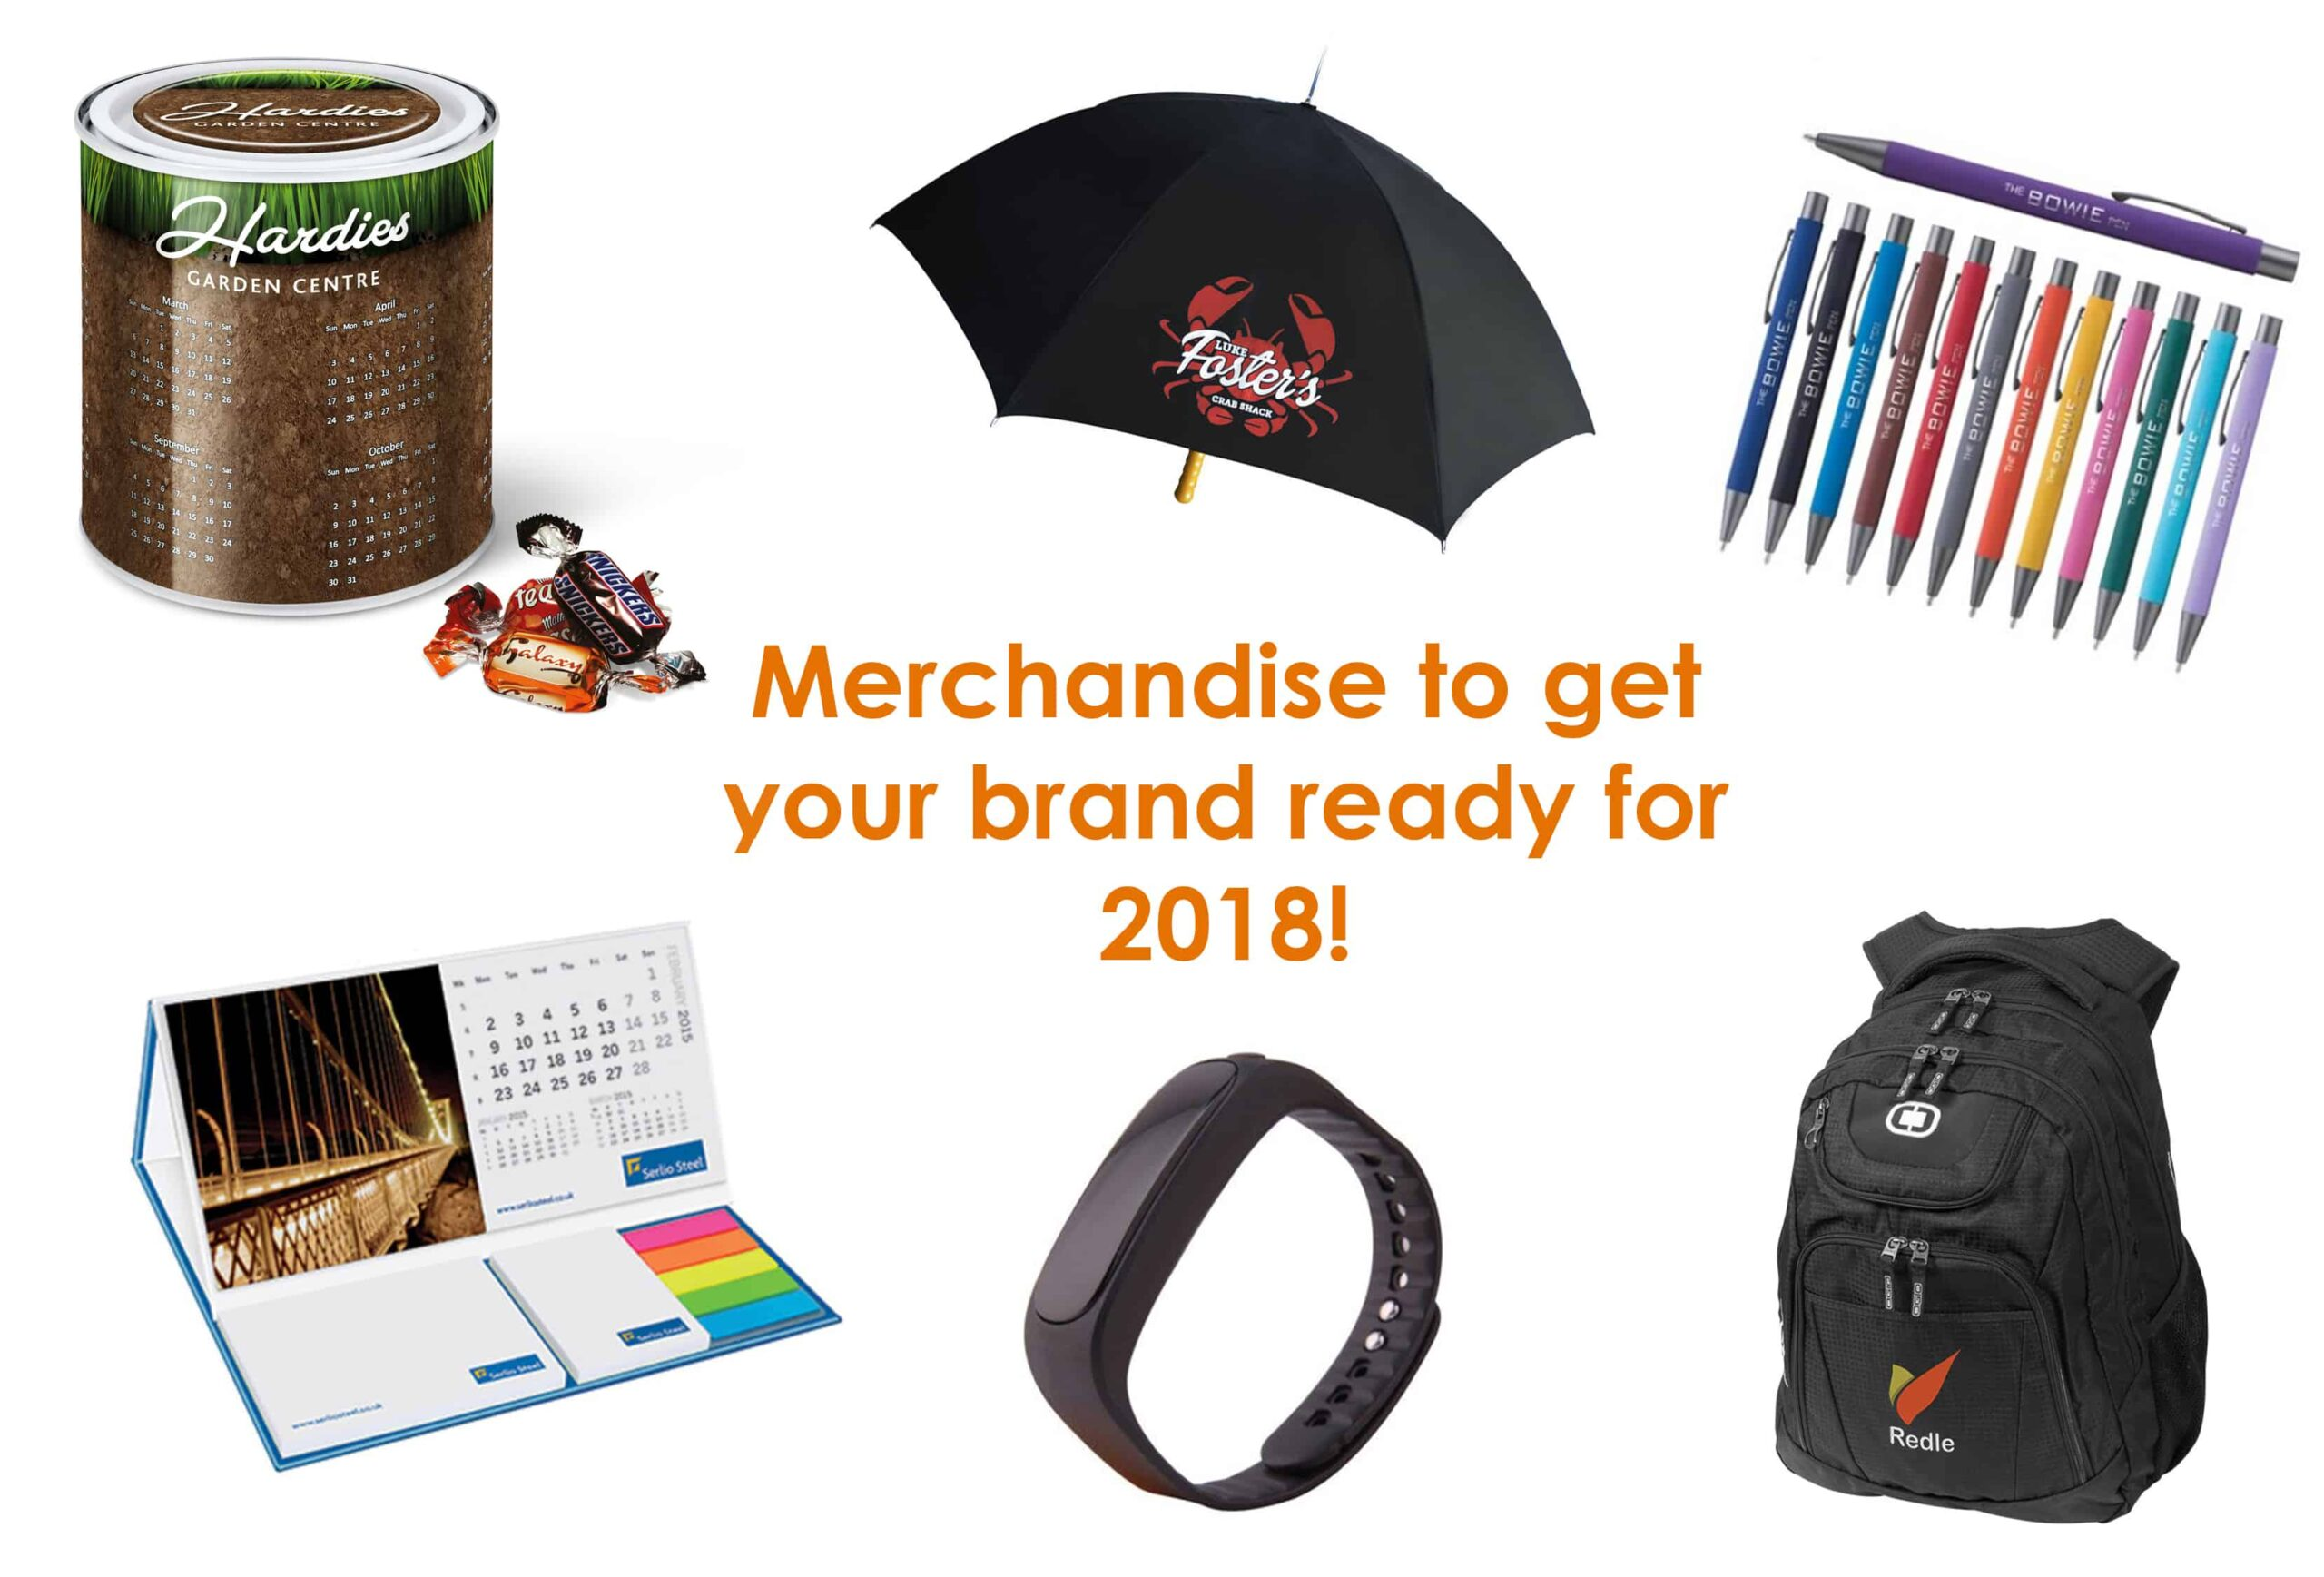 Promotional Merchandise To Get Your Brand Ready For 2018